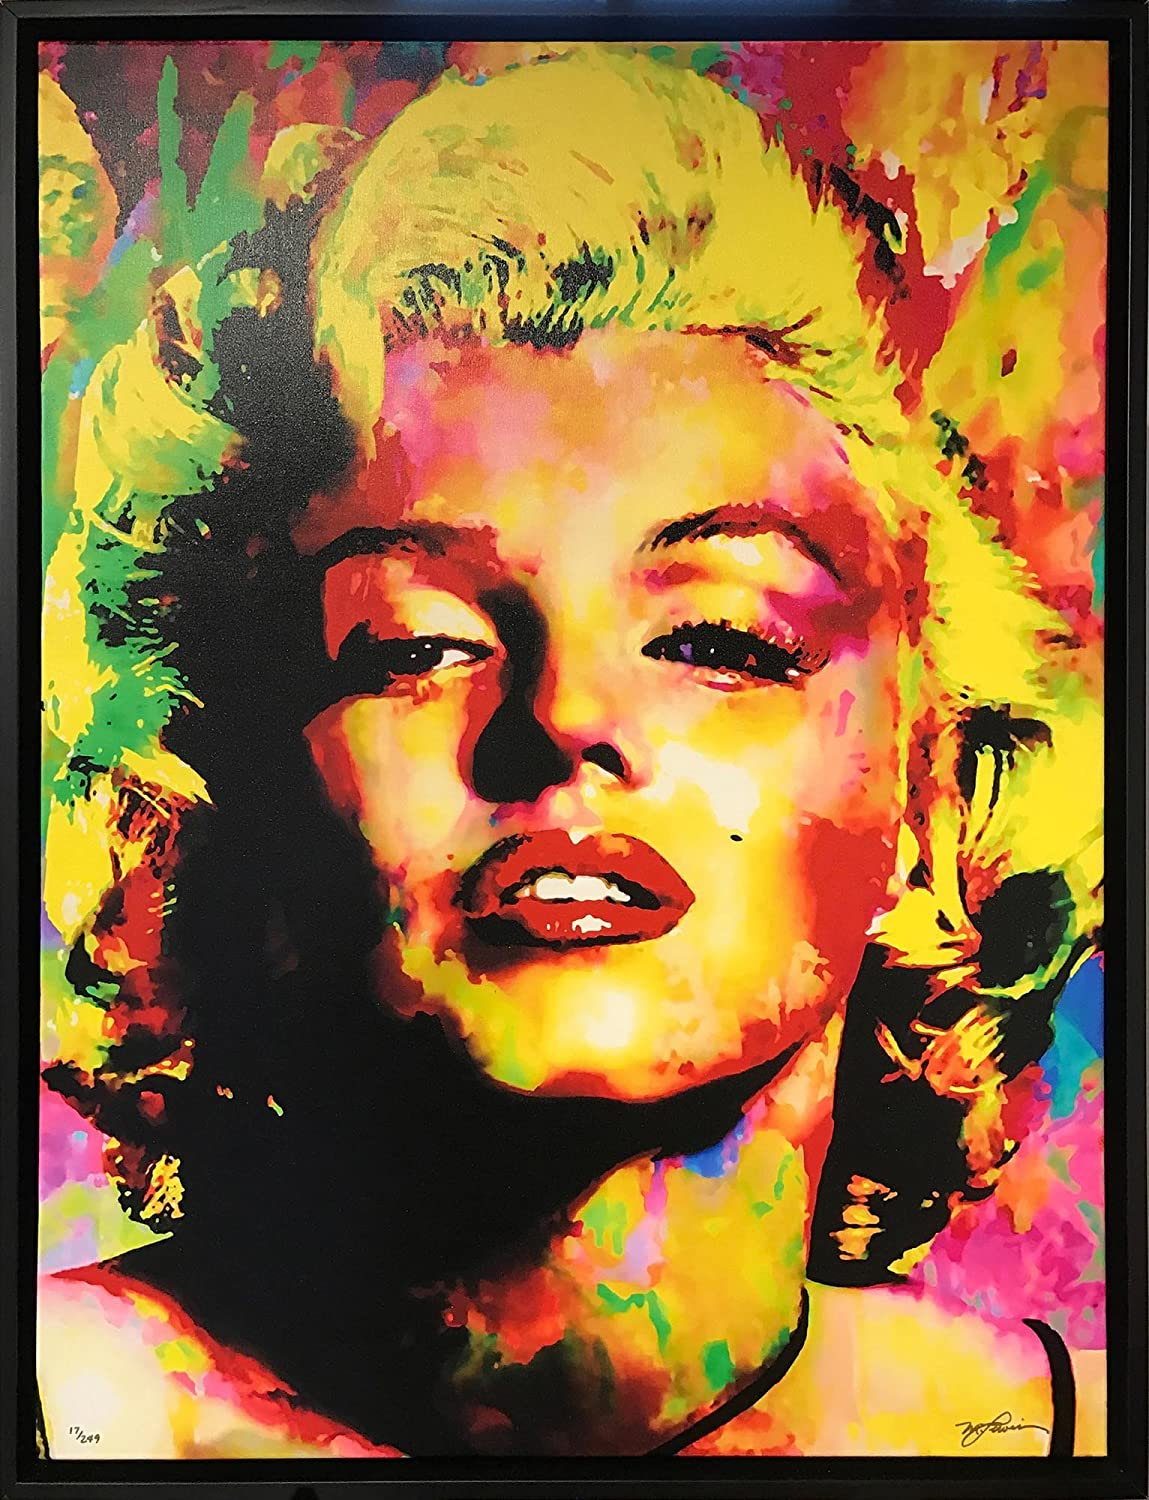 Amazon.com: Relinquished Beauty - Marilyn Monroe - Limited Edition ...